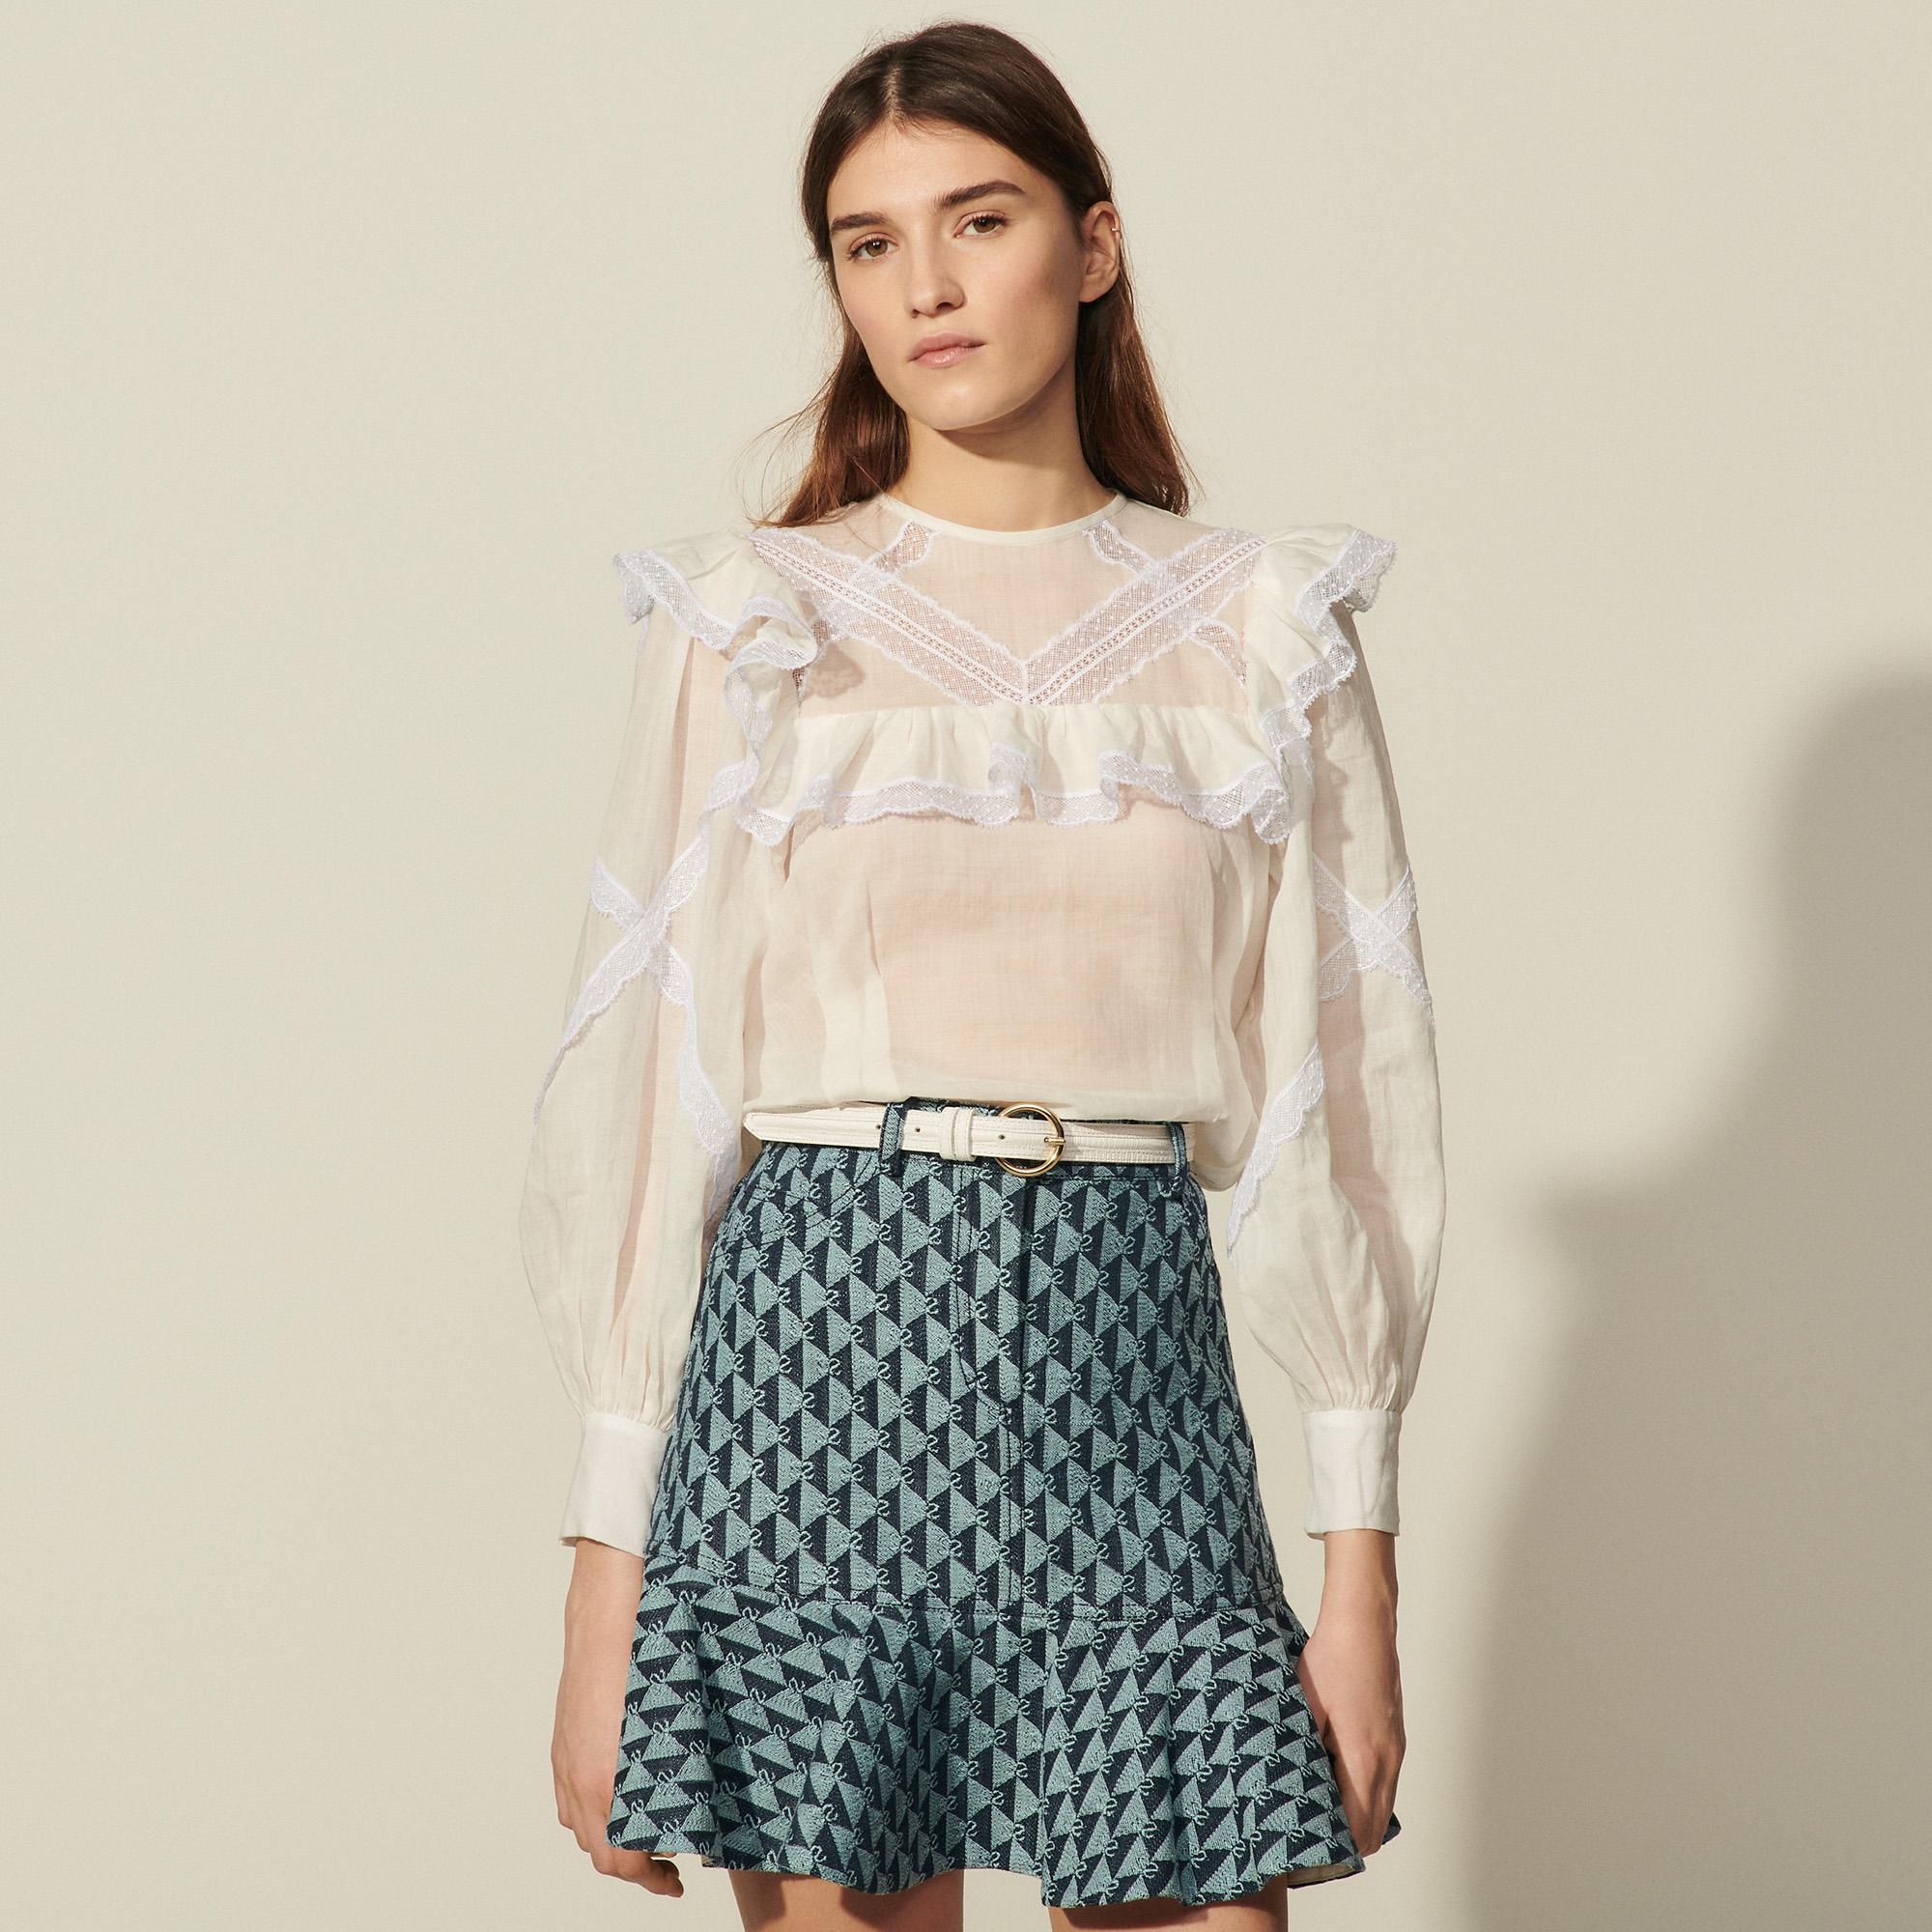 Top with braid trim and ruffles